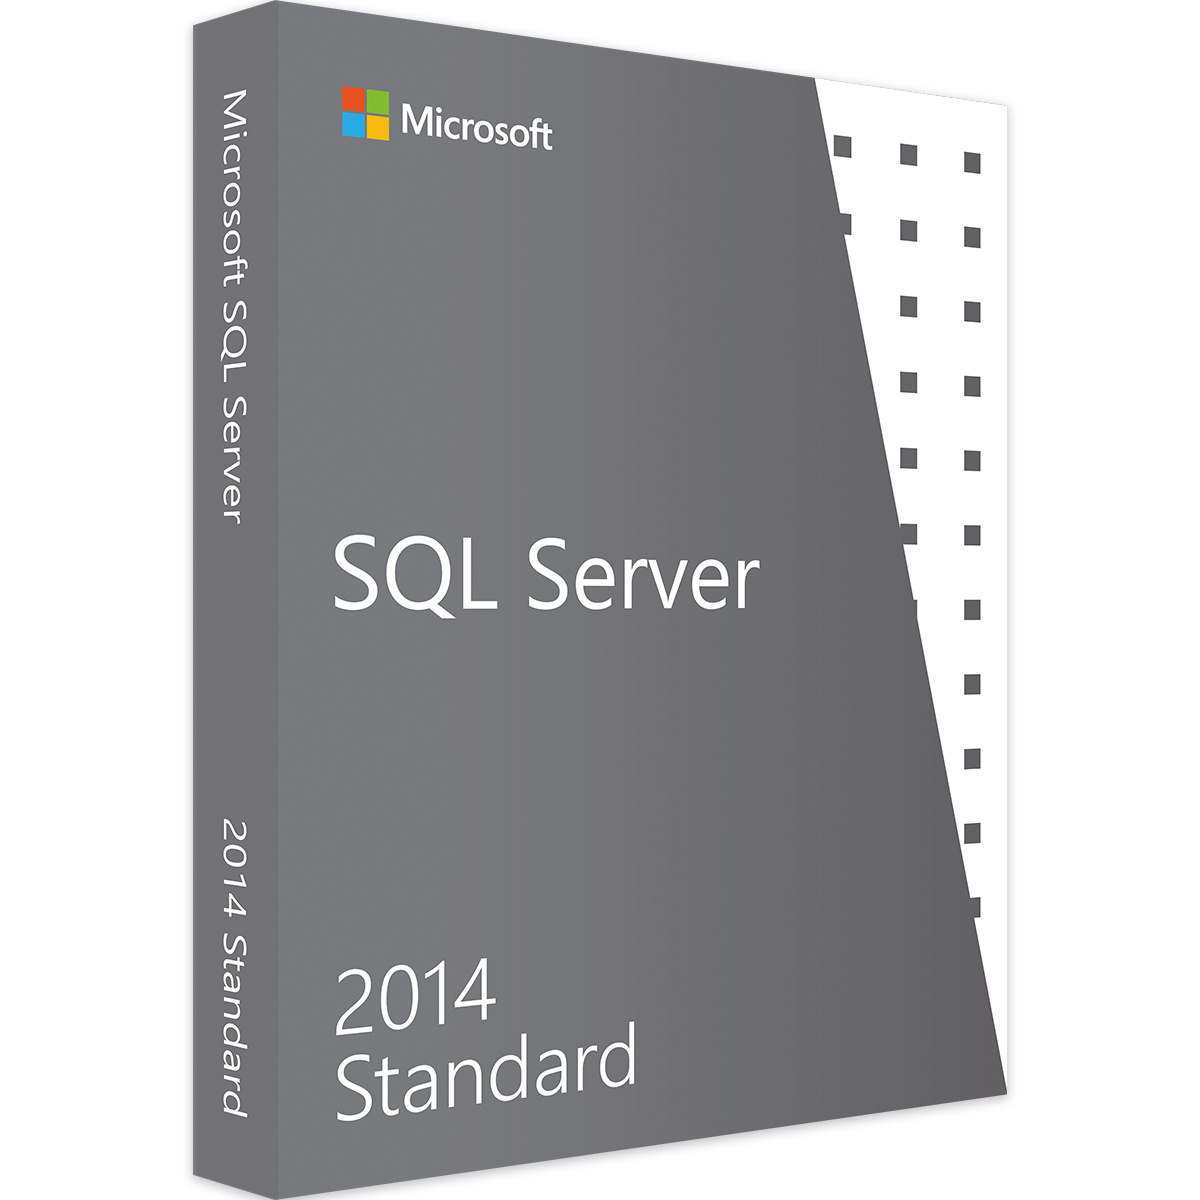 Microsoft SQL Server 2014 Standard - Microsoft Open License